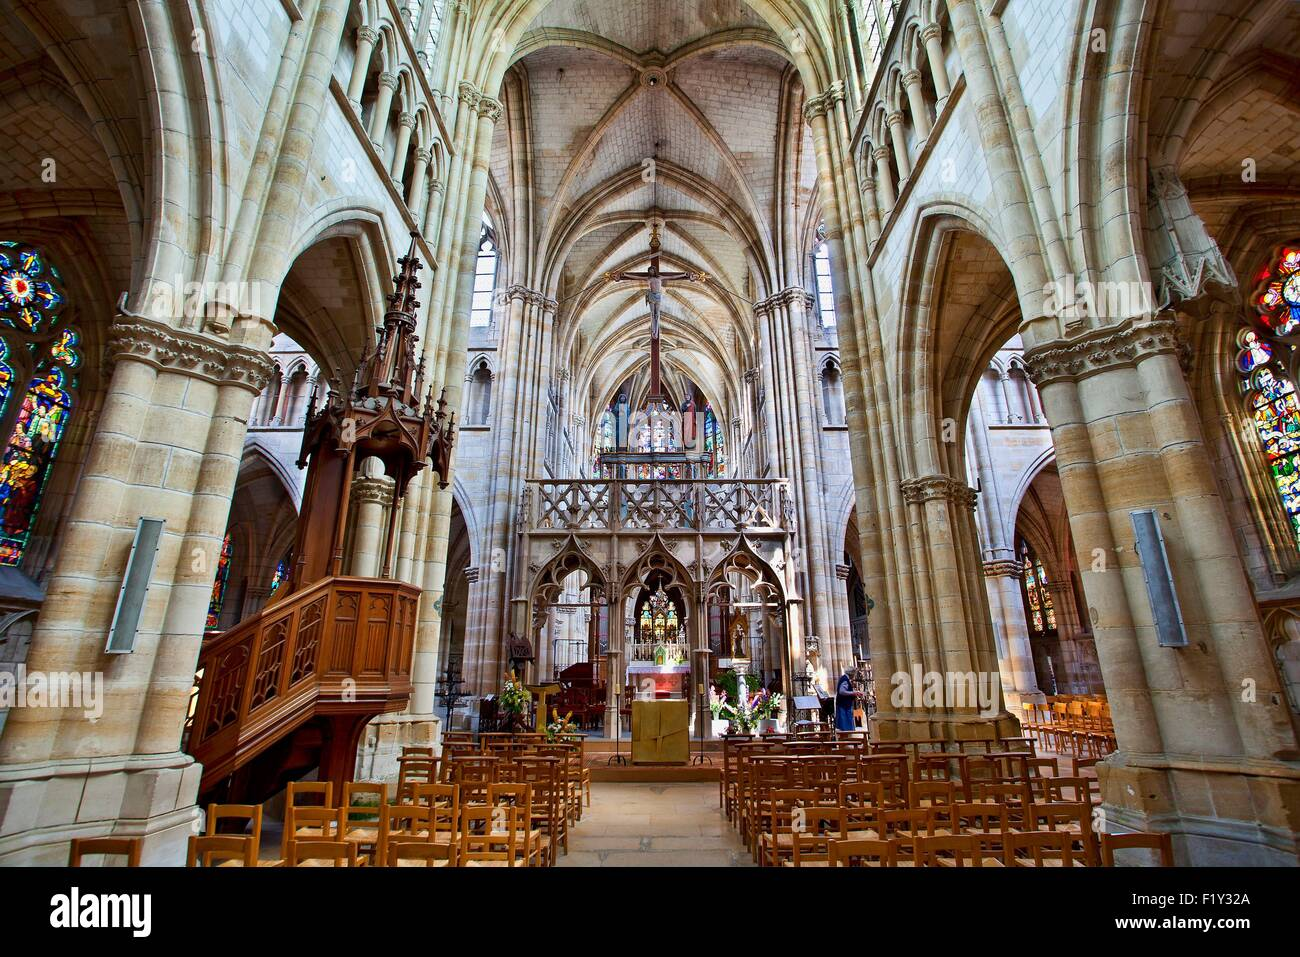 France, Marne, L'Epine, stop on the way of St James listed as World Heritage by UNESCO, Notre Dame basilica Stock Photo